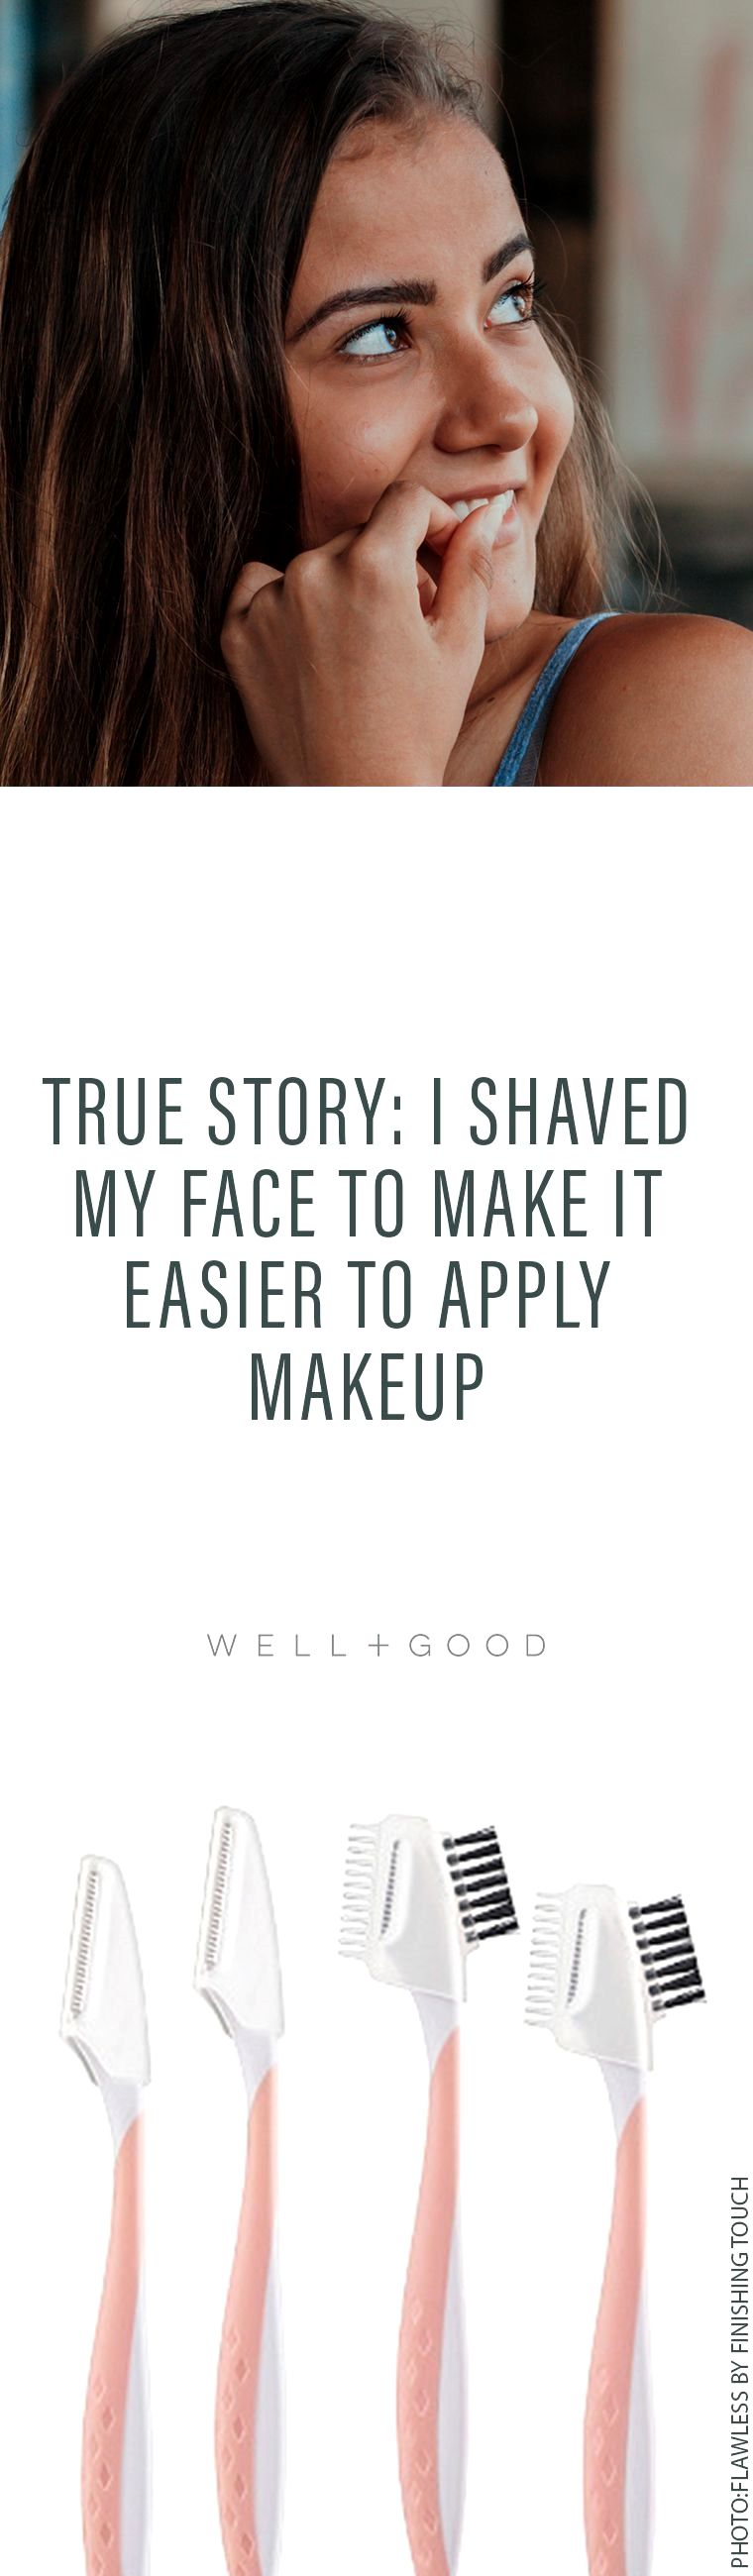 Pin by graymmmoa on Beauty in 2020 How to apply makeup